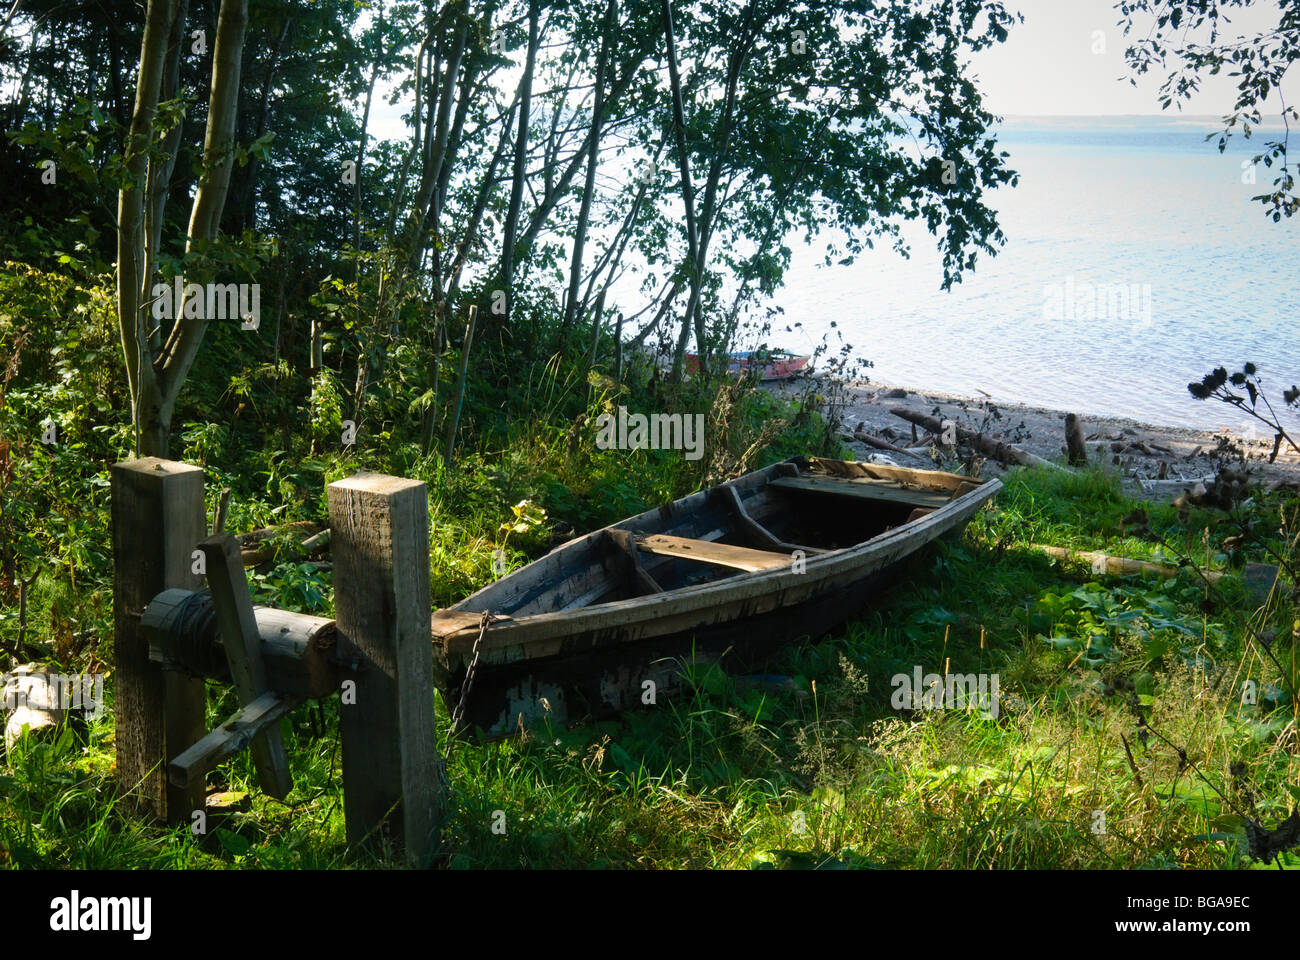 Old boats on the shore of the Kama River, Perm, Russia Stock Photo